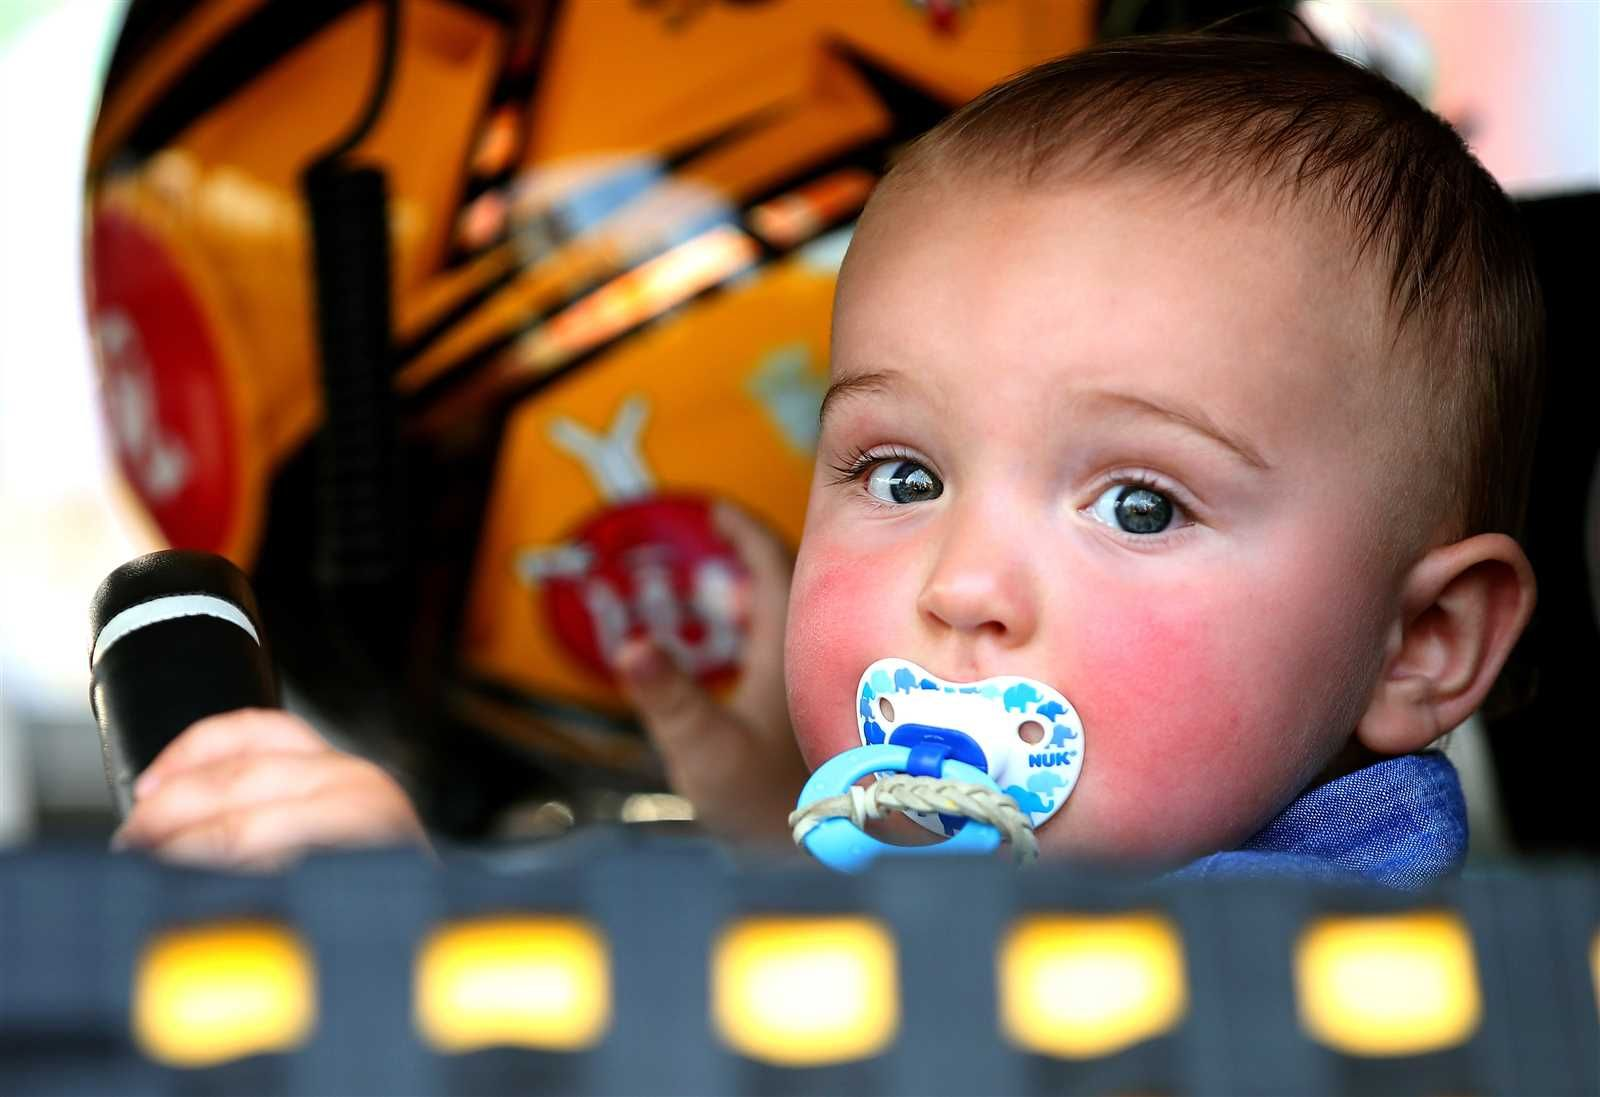 At-track photos: Saturday, Kansas:   Sunday, May 8, 2016  -   Brexton, son of Kyle Busch, sits in his dad's No. 18 Toyota during pre-race ceremonies at the Midwestern track.  -   Photo Credit: Photo by Sean Gardner/NASCAR via Getty Images